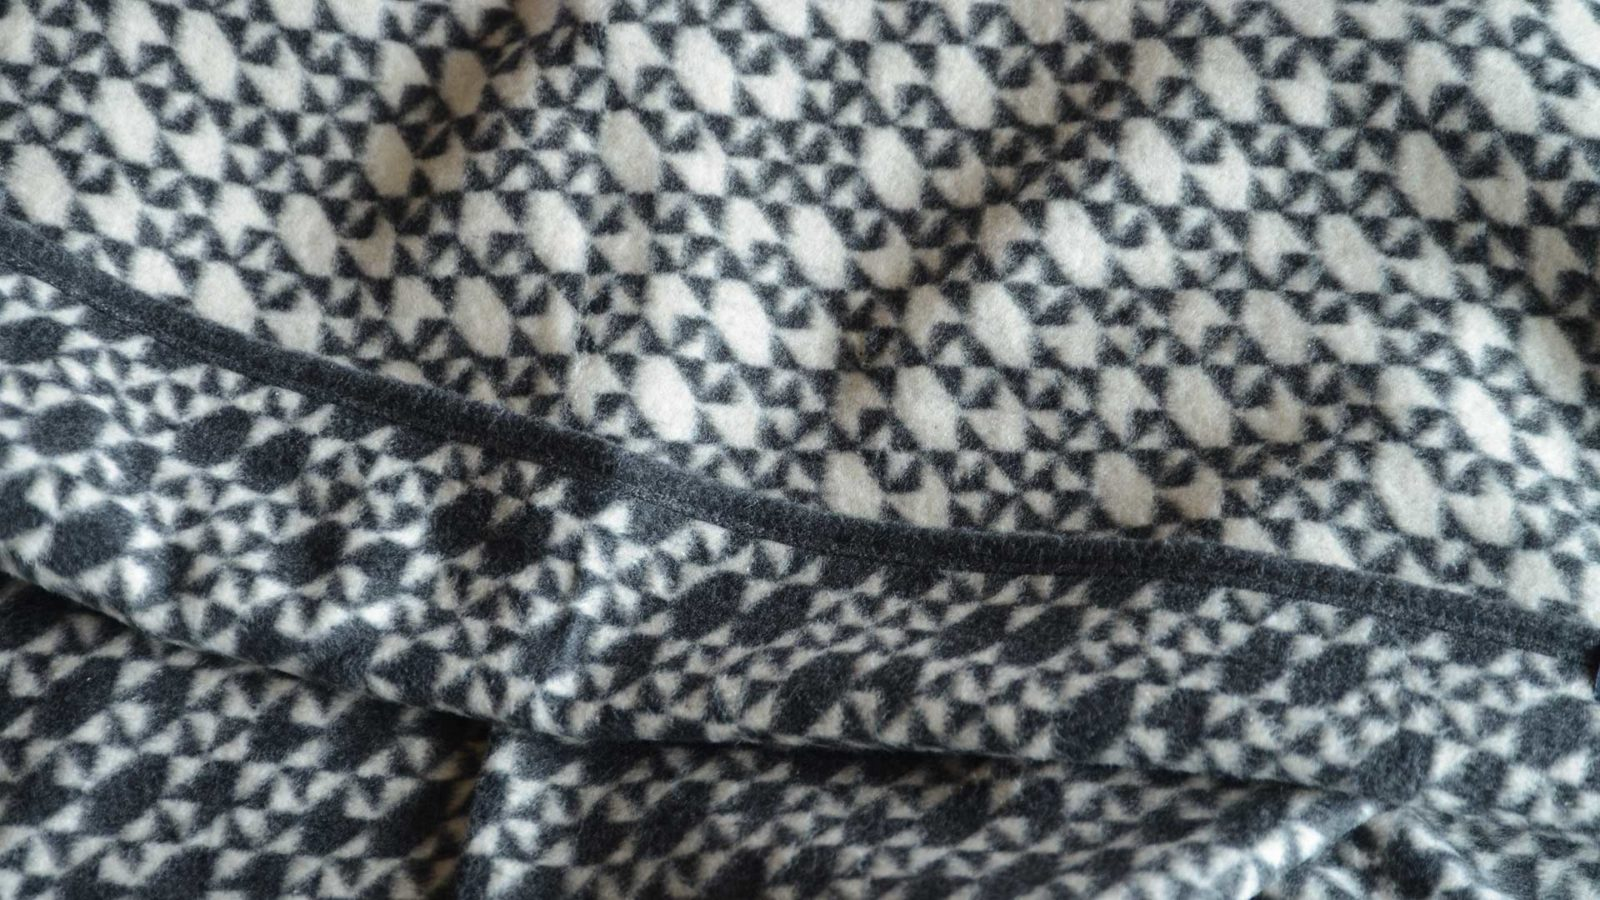 soft brushed cotton blanket with black and white design